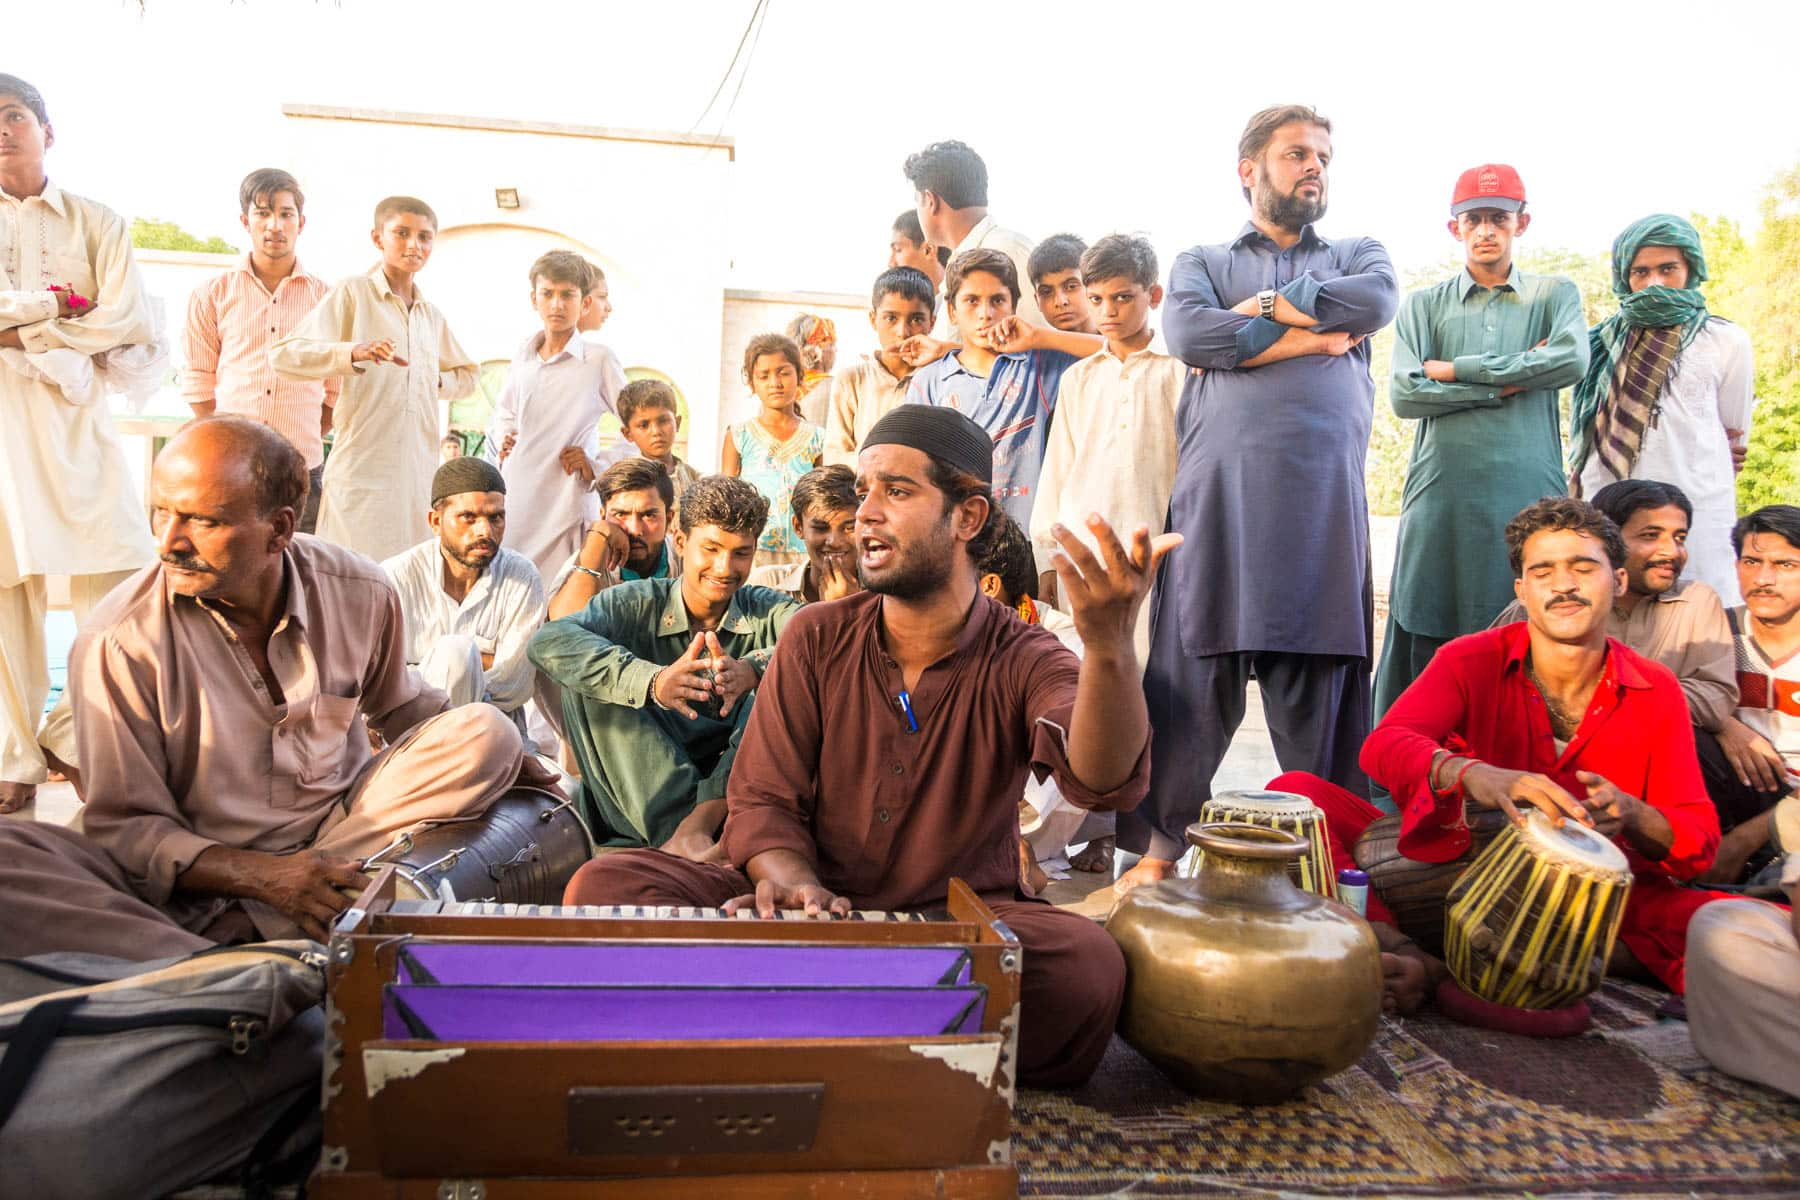 Day trips from Lahore, Pakistan - Sufi qawwali music at the shrine of Baba Bulleh Shah in Kasur, Pakistan